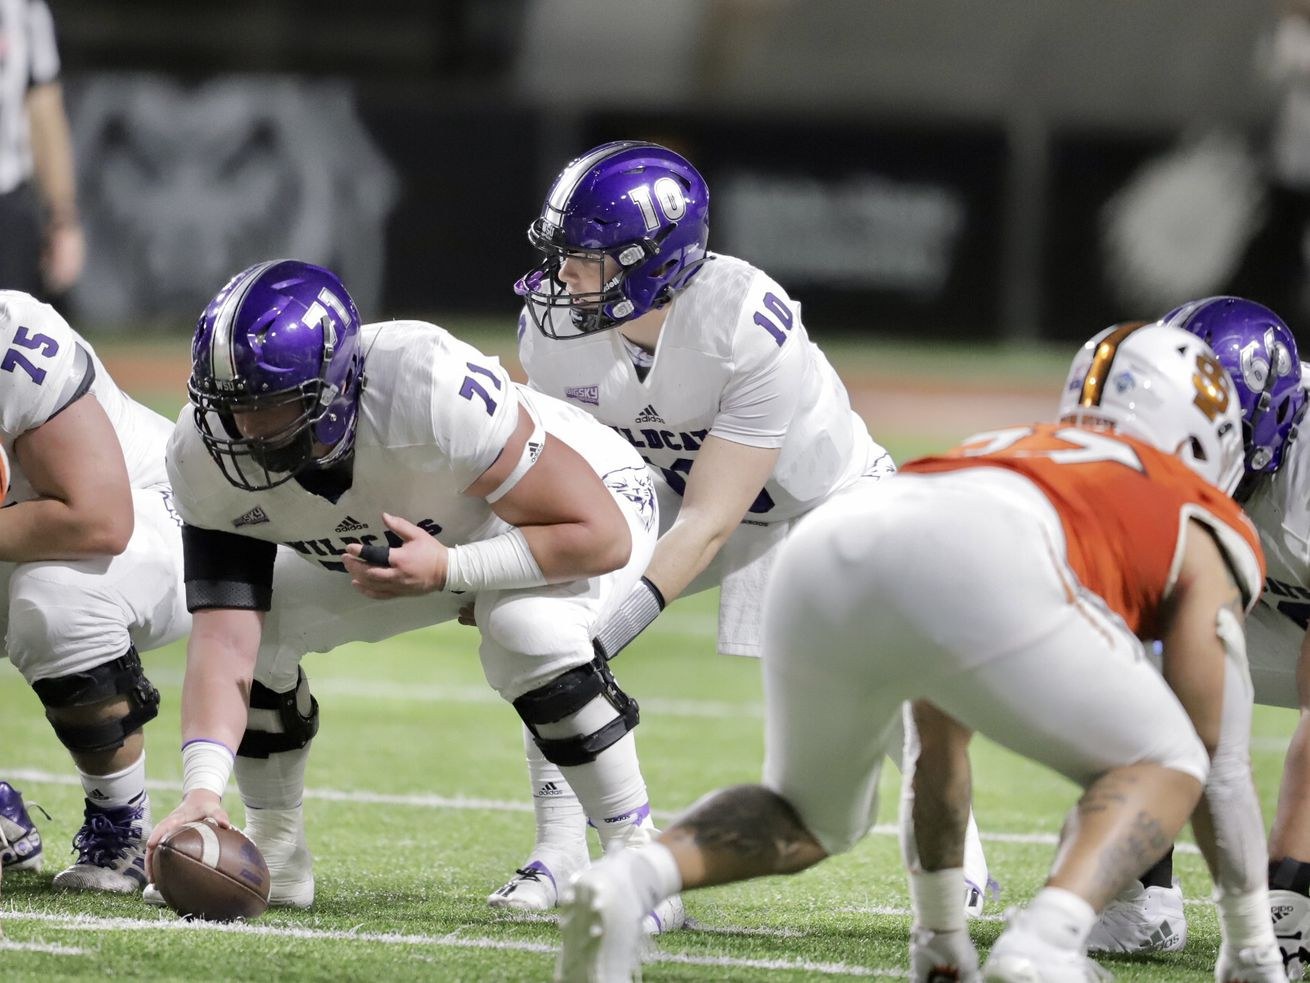 Bronson Barron shines in debut, Weber State beats Idaho State 49-21